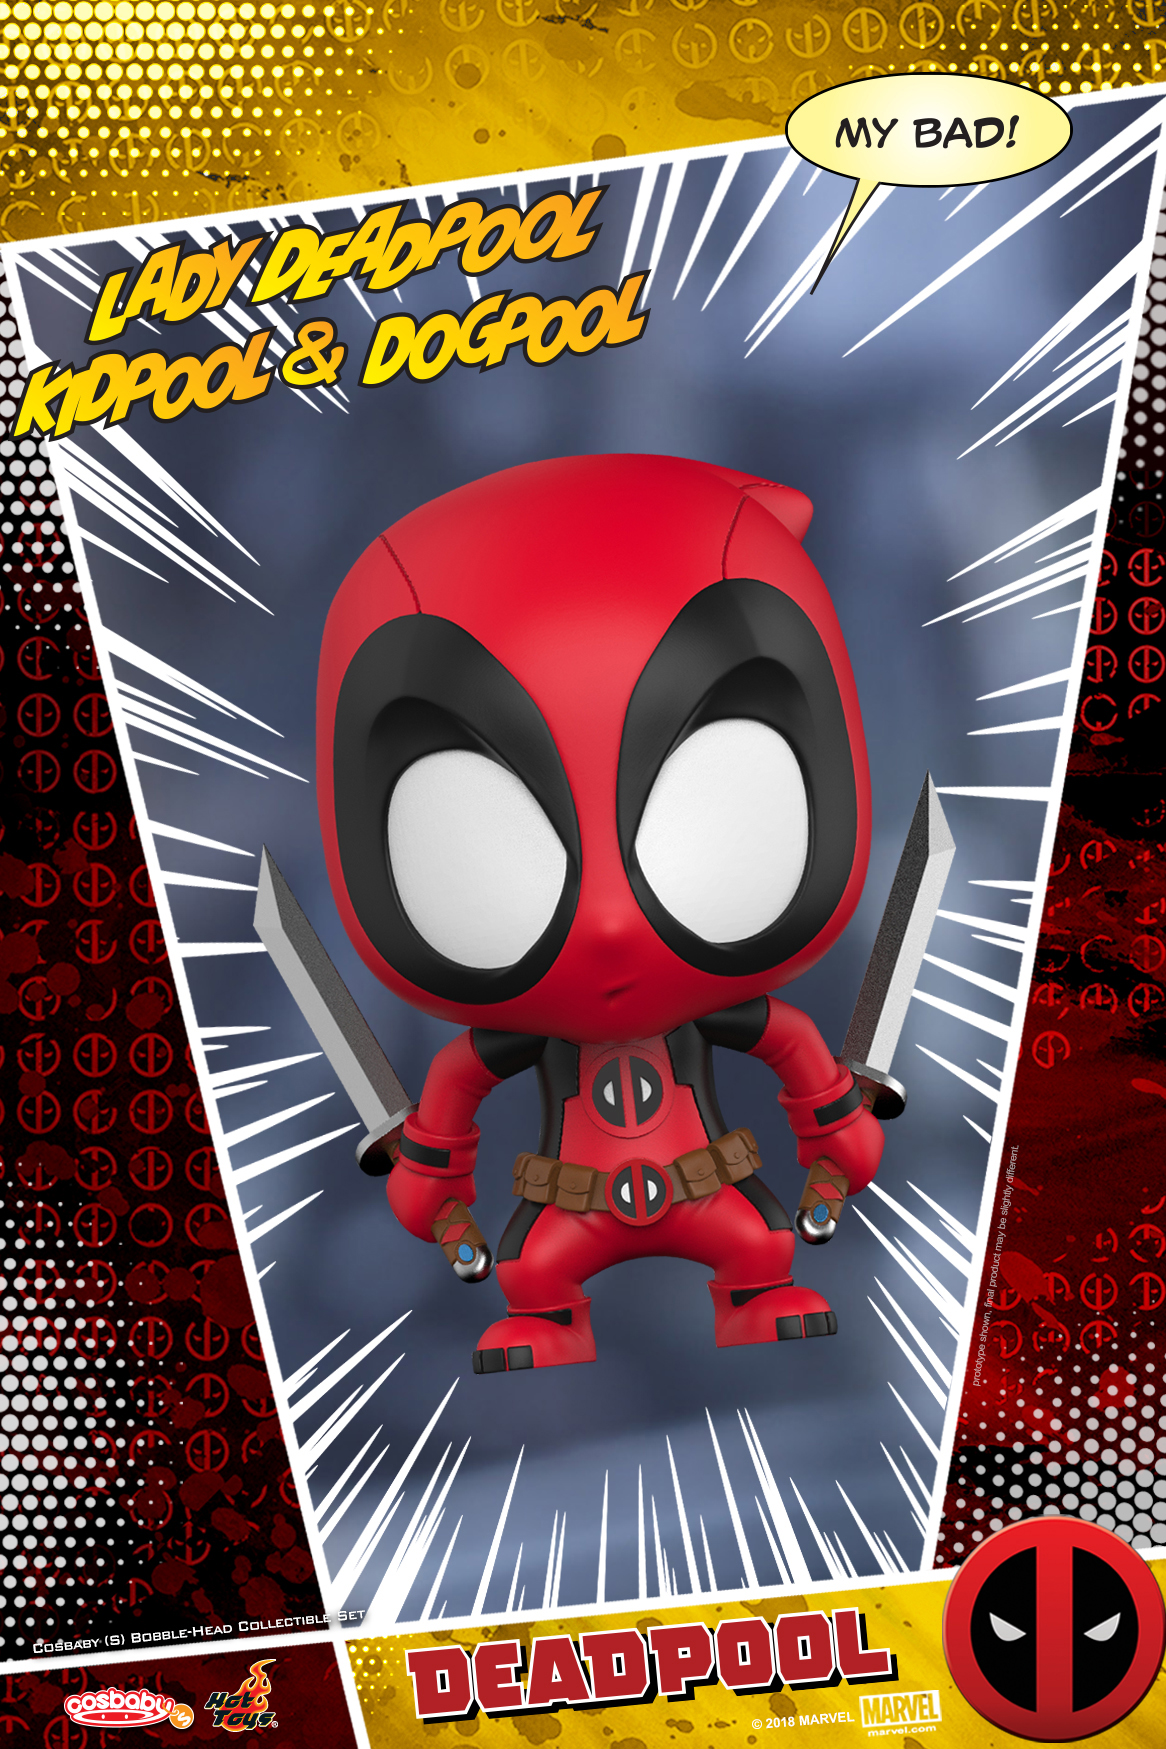 Hot-Toys---Lady-Deadpool,-Kidpool-&-Dogpool-Cosbaby-(S)-Set_PR4